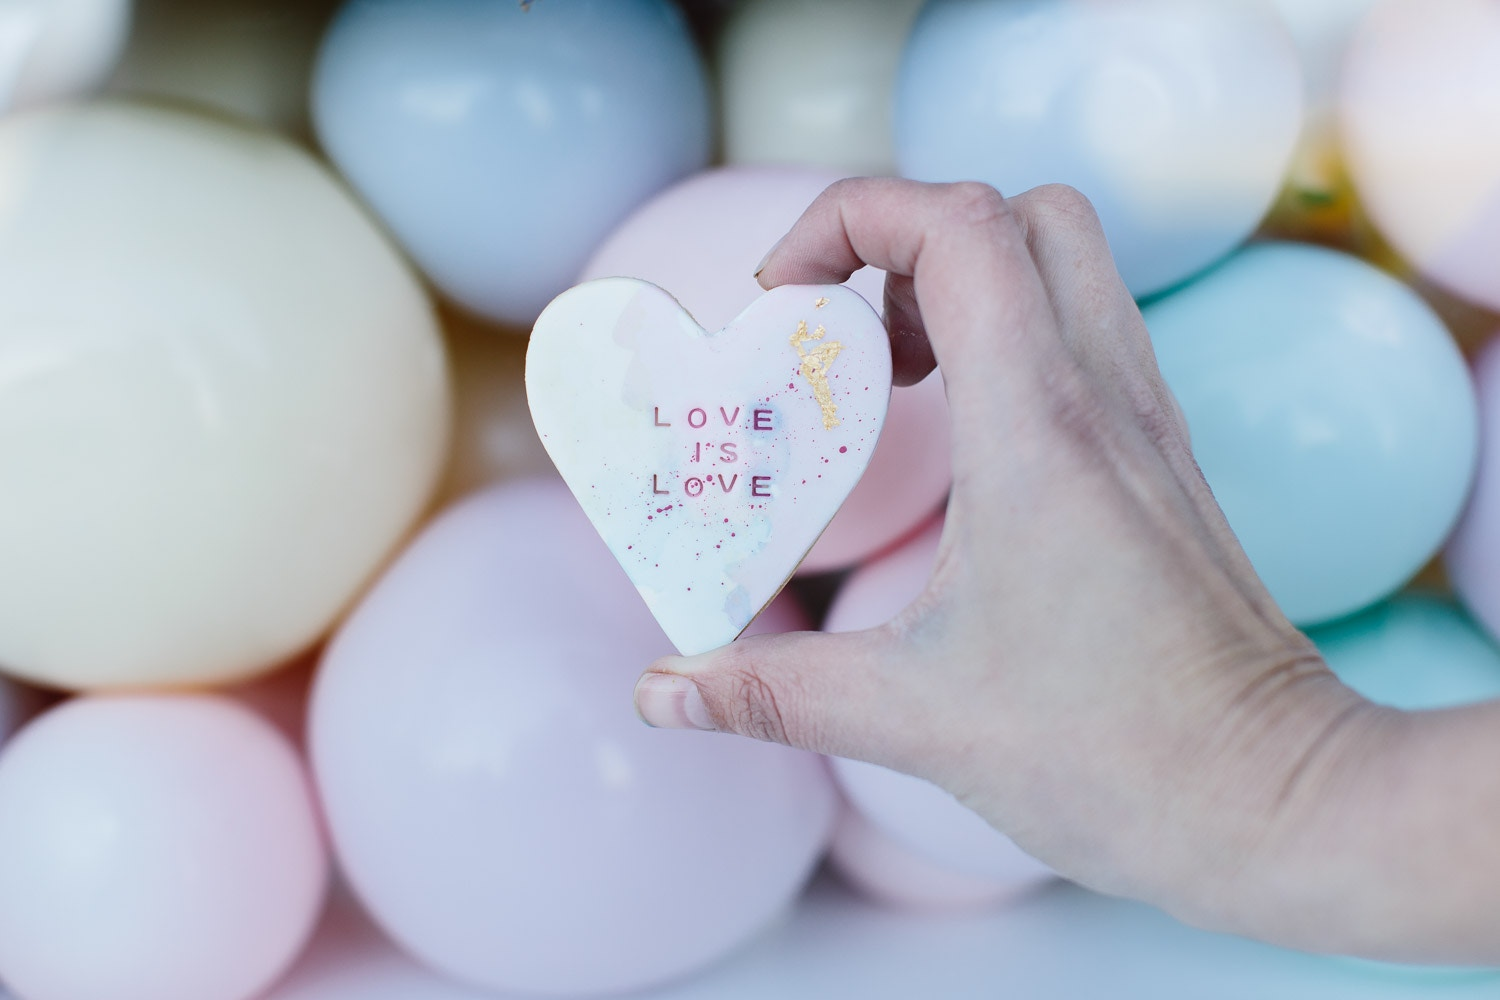 SHOP OUR #LOVEISLOVE WEDDING